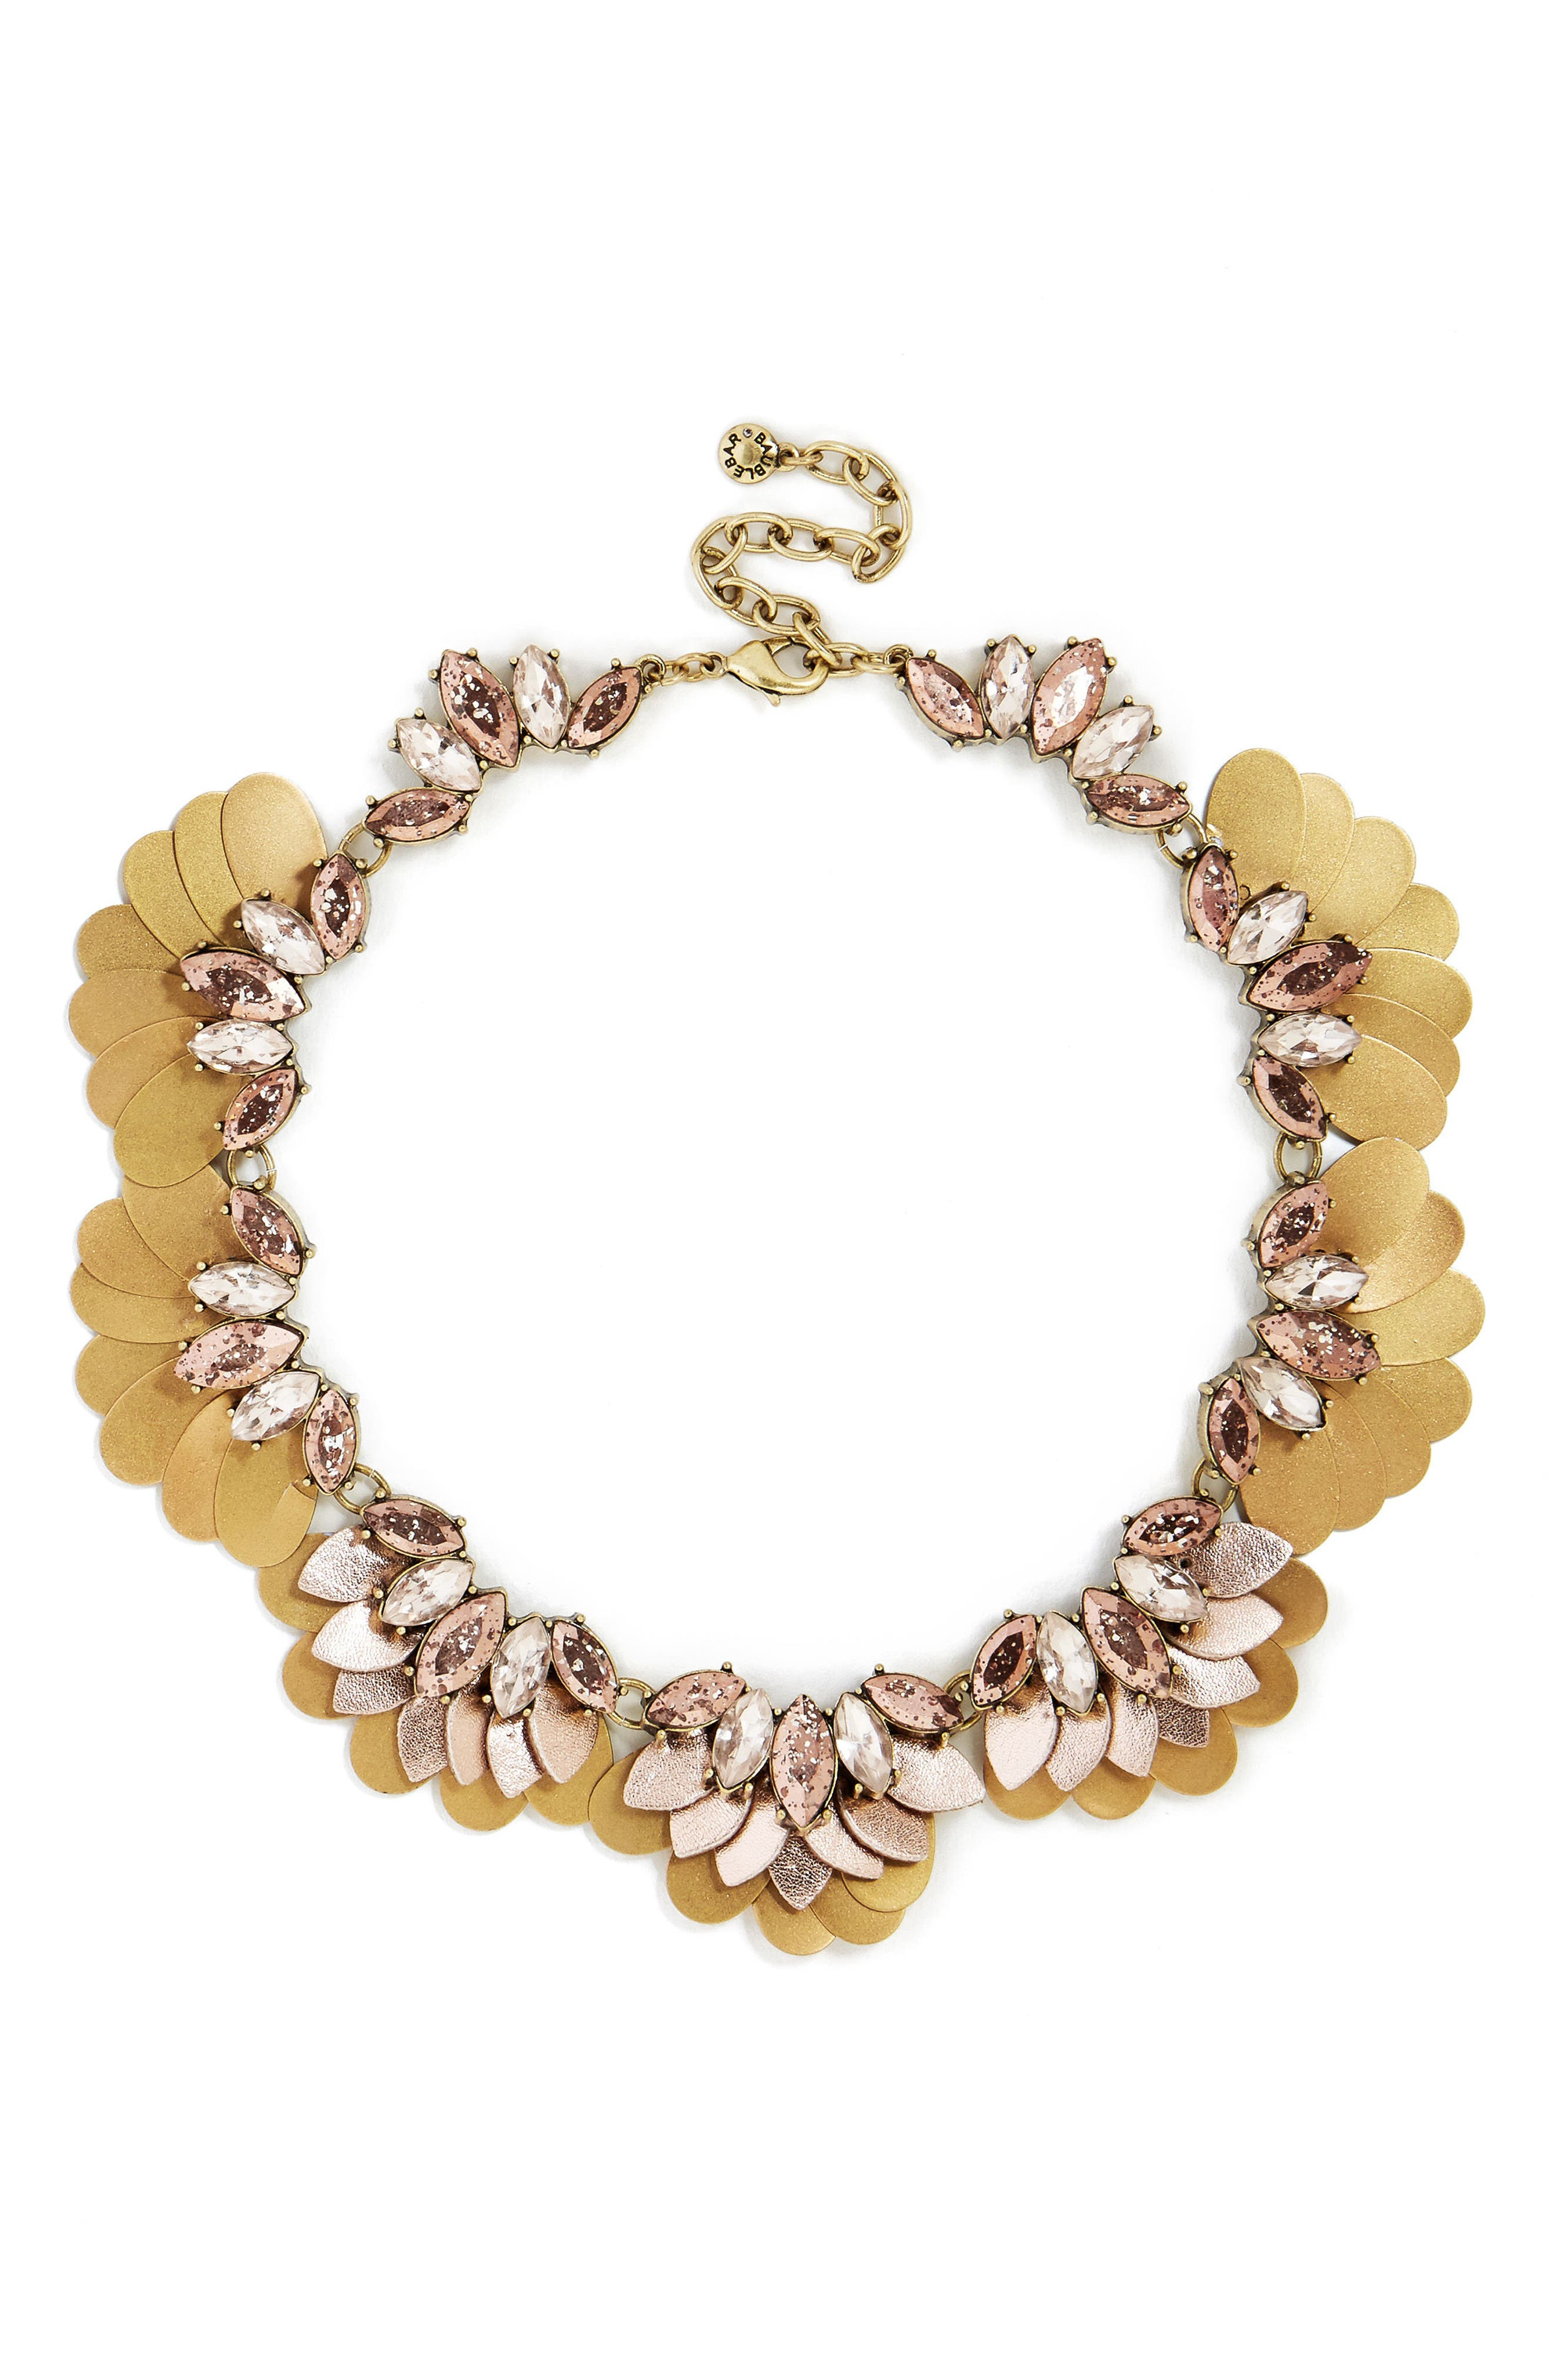 Main Image - BaubleBar Florencia Necklace